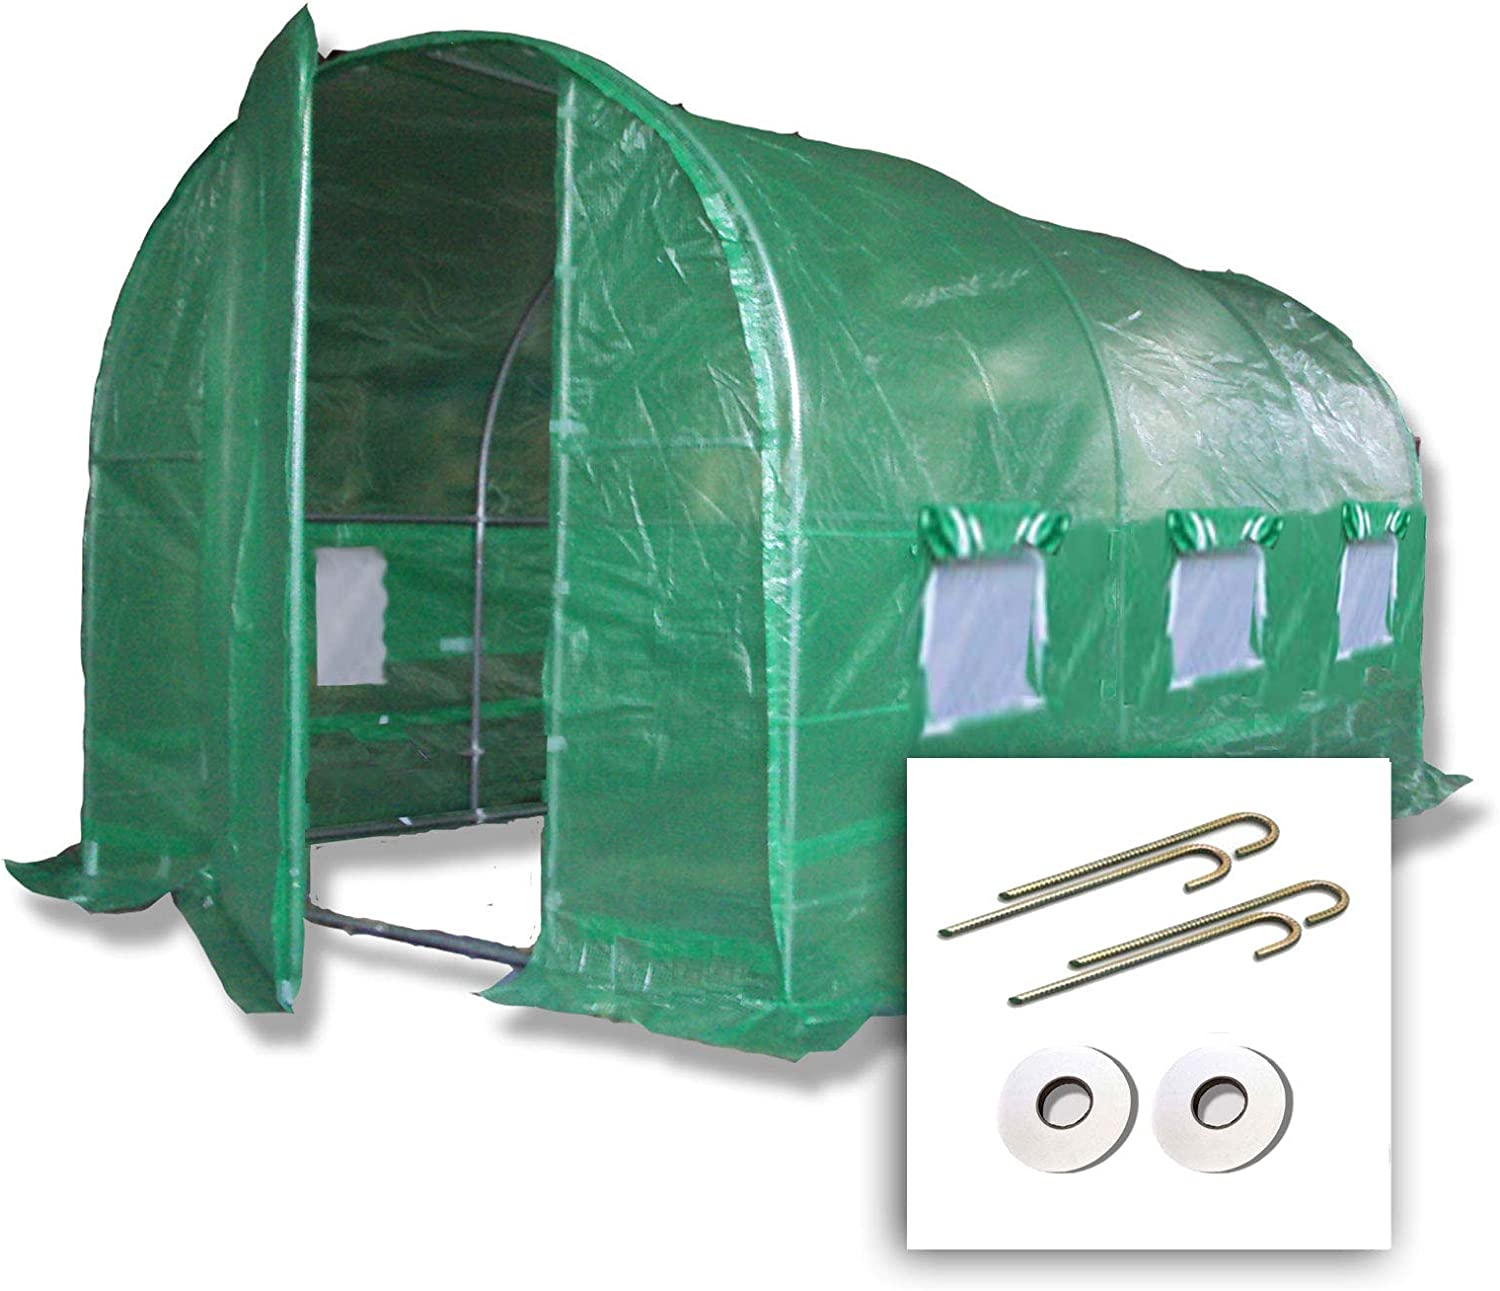 4m x 2m Polytunnel + Ground Anchor Kit Strongest In It's Class  a fully Galvanised Structure with more Diagonal & Roof Bracing than all others. Metal Hinged Door   Groundbar Kit